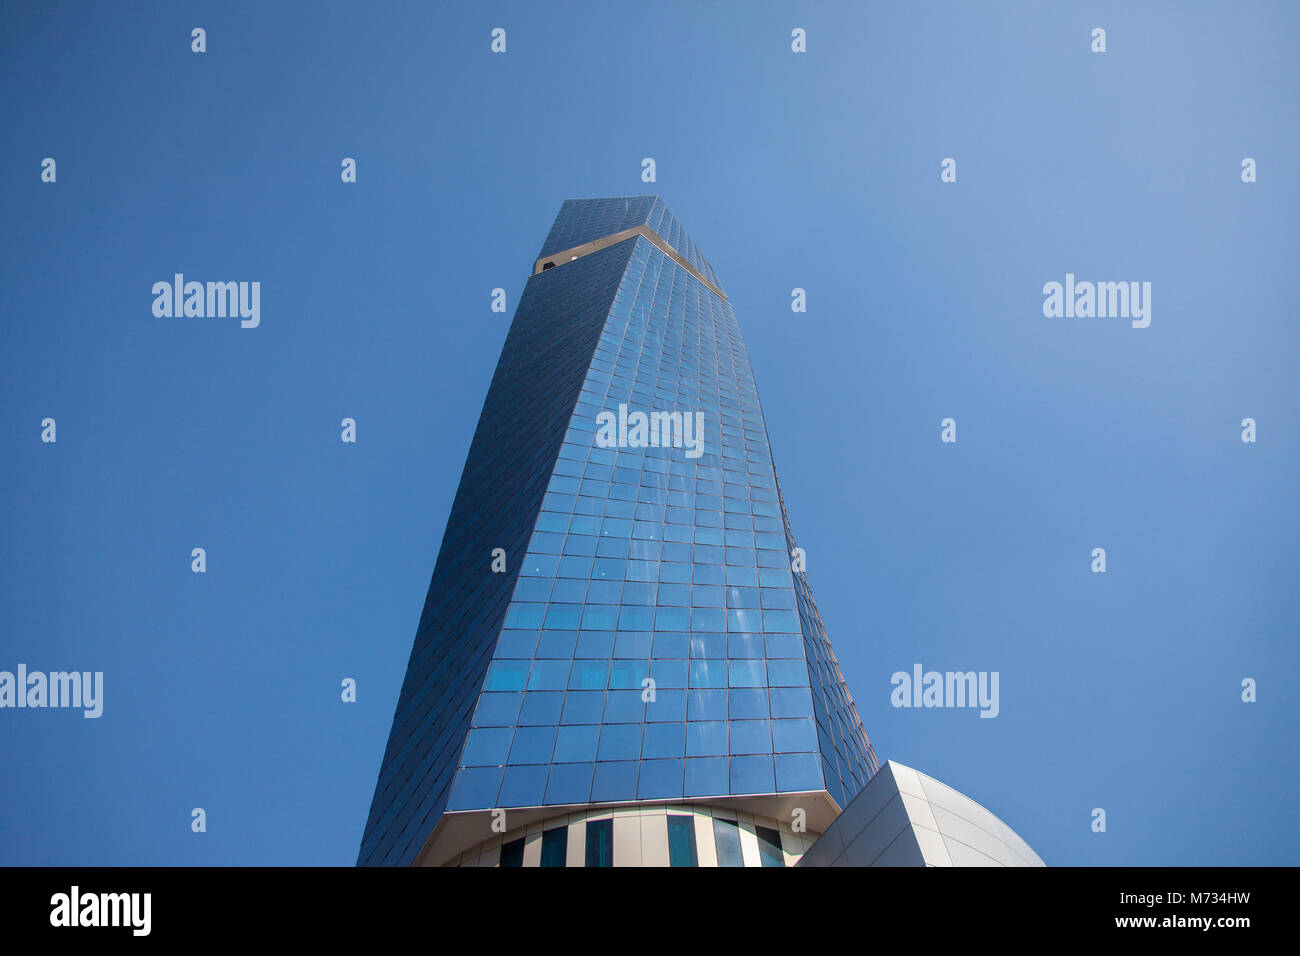 SARAJEVO, BOSNIA HERZEGOVINA - FEBRUARY 16, 2018: Sun reflecting on Avaz Twist Tower during a sunny afternoon. Avaz Stock Photo